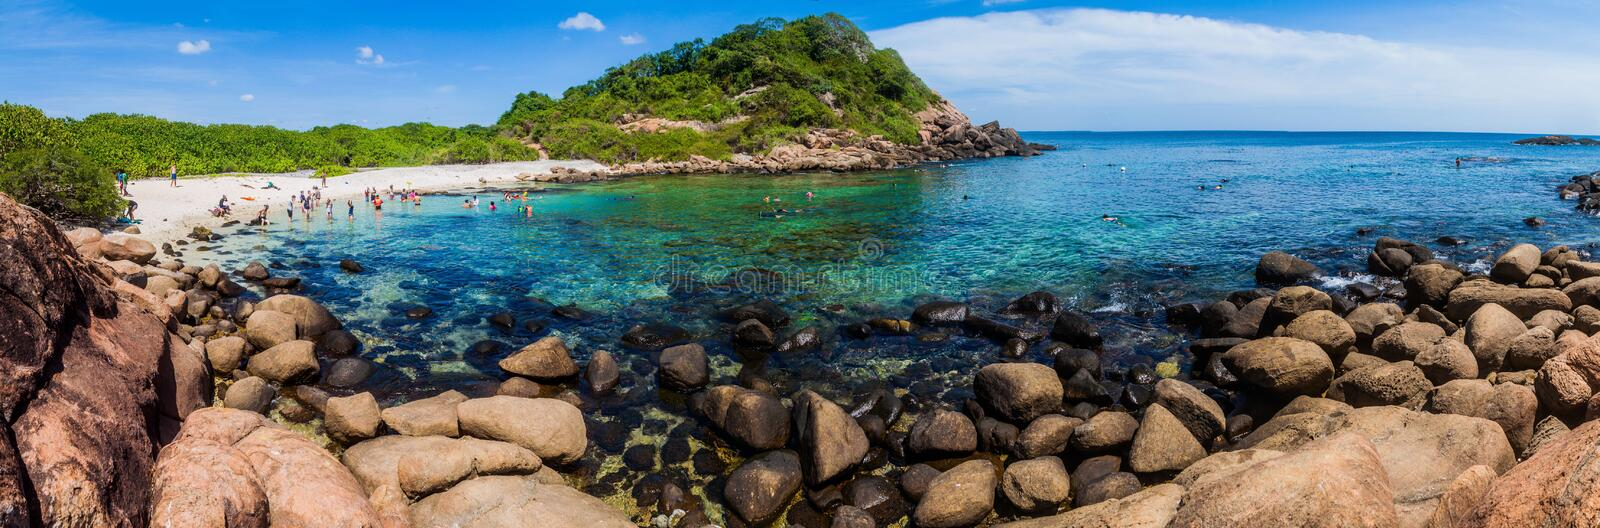 PIGEON ISLAND, SRI LANKA - JULY 25, 2016: People snorkel on a coral reef in Pigeon Island National Park near Nilaveli. Village in Sri Lanka stock image